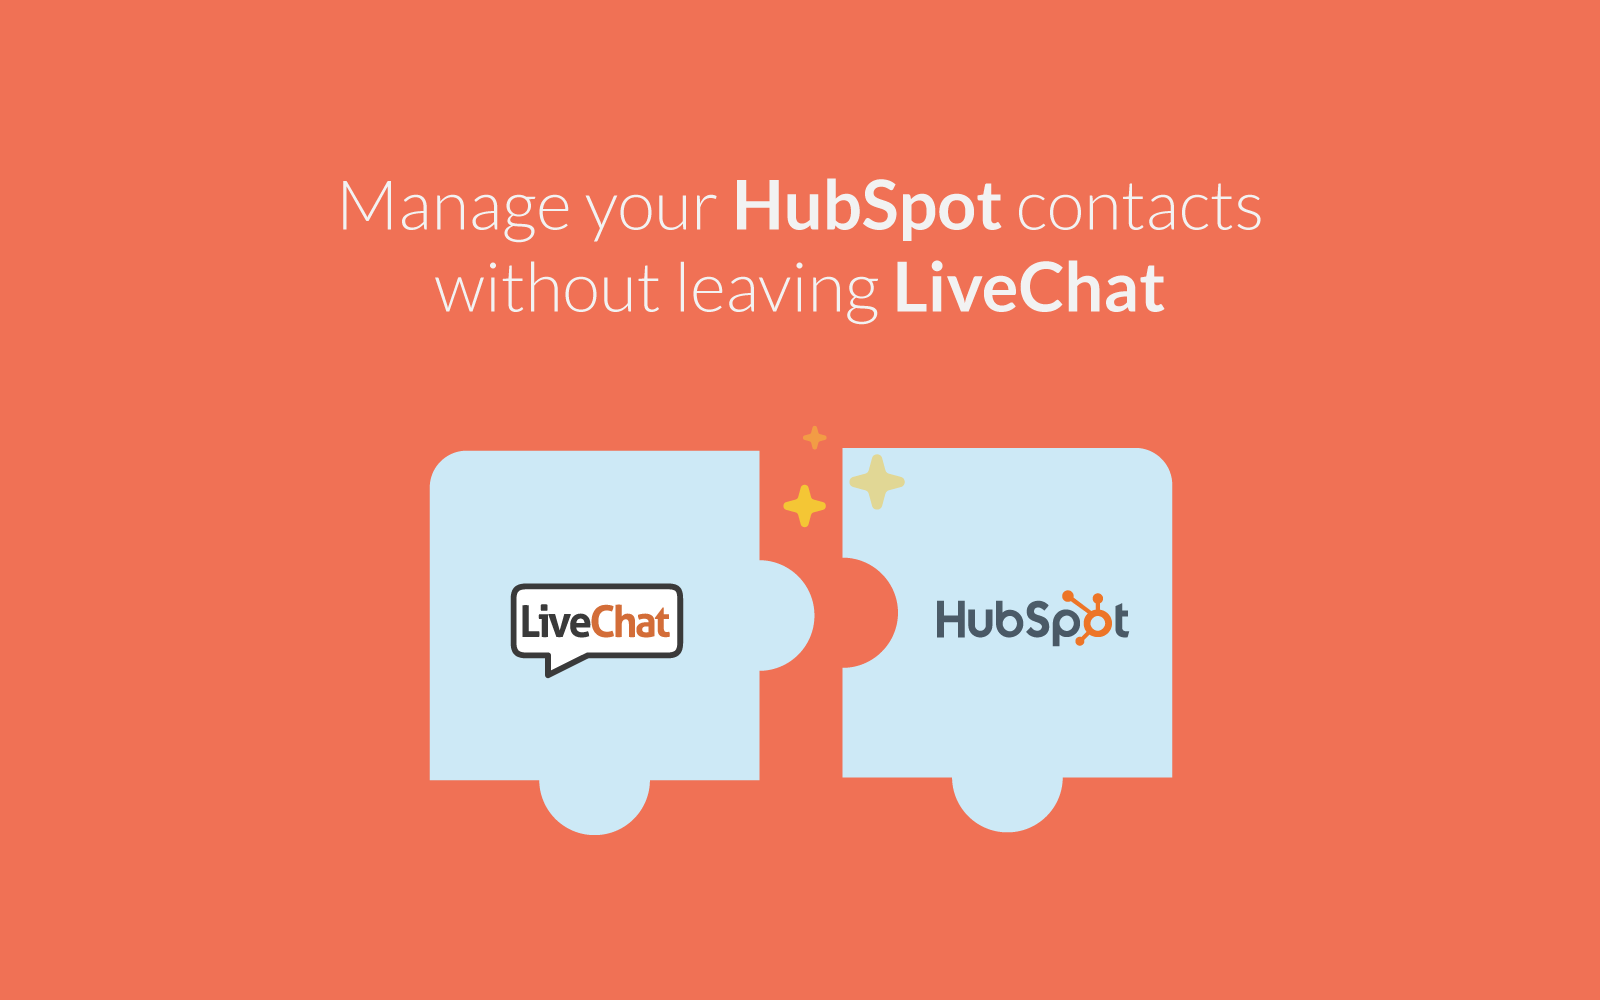 Hubspot integrates with LiveChat